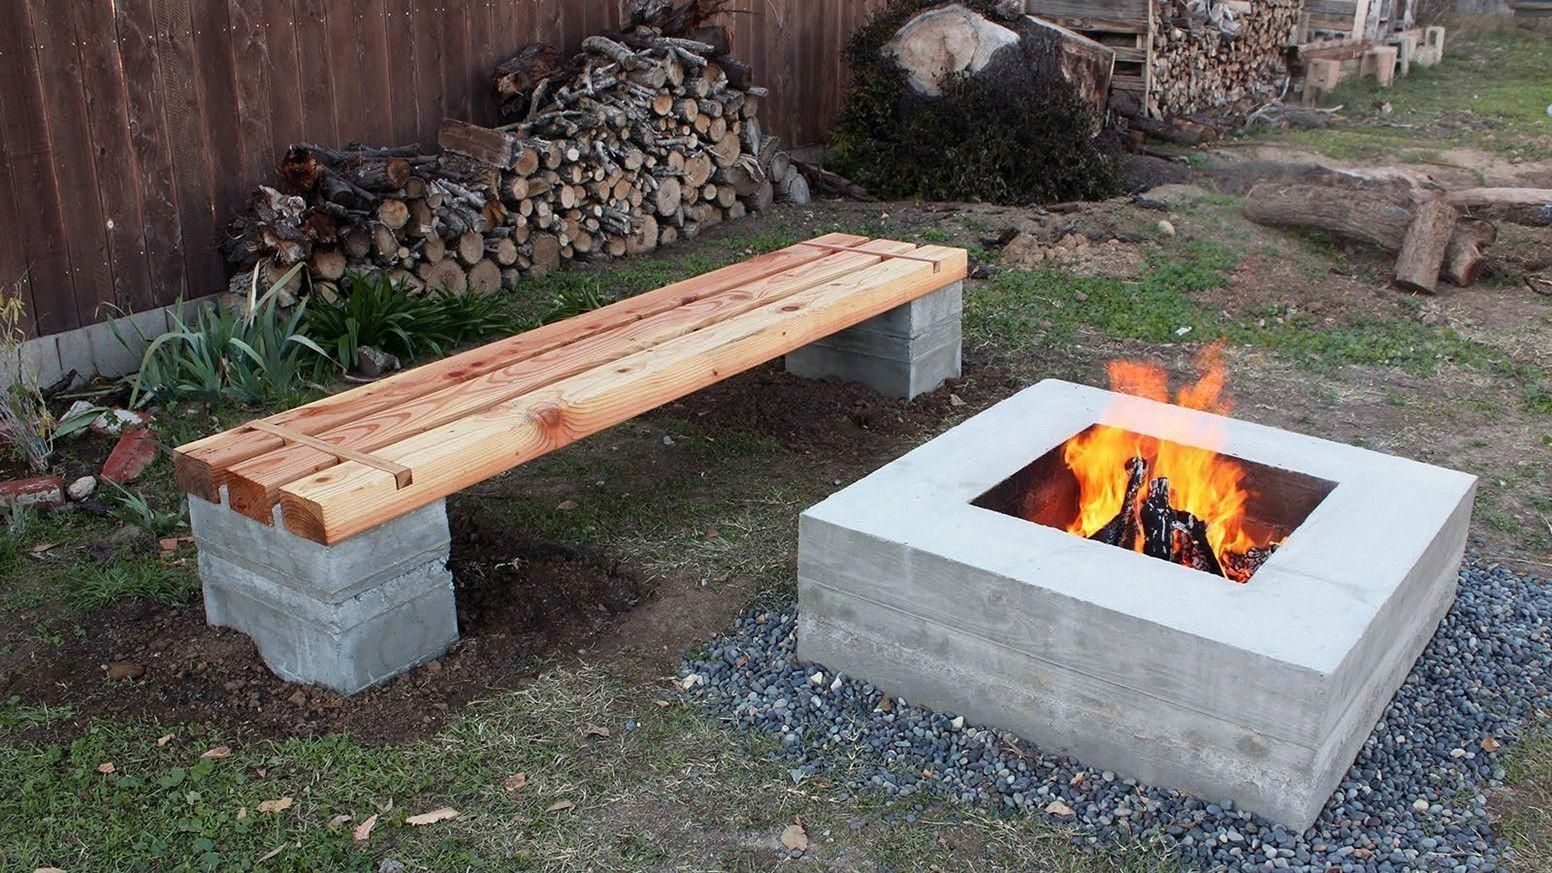 Check out this neat photo - what an imaginative type #outdoorfirechimney #betonblockgarten